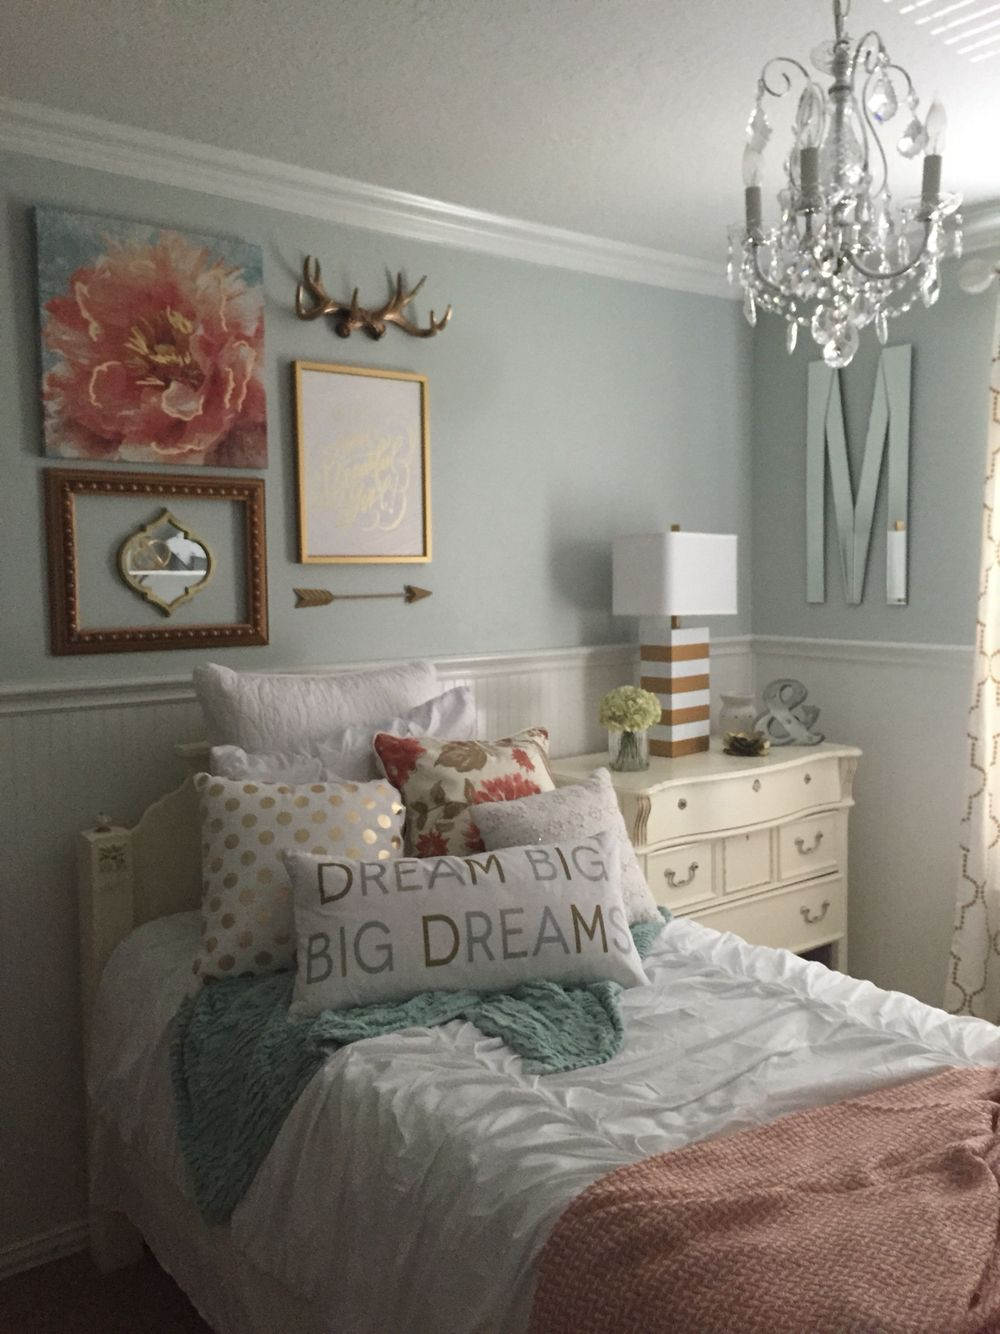 Bedrooms. Girls bedroom  mint  coral  blush  white  metallic gold   My Own